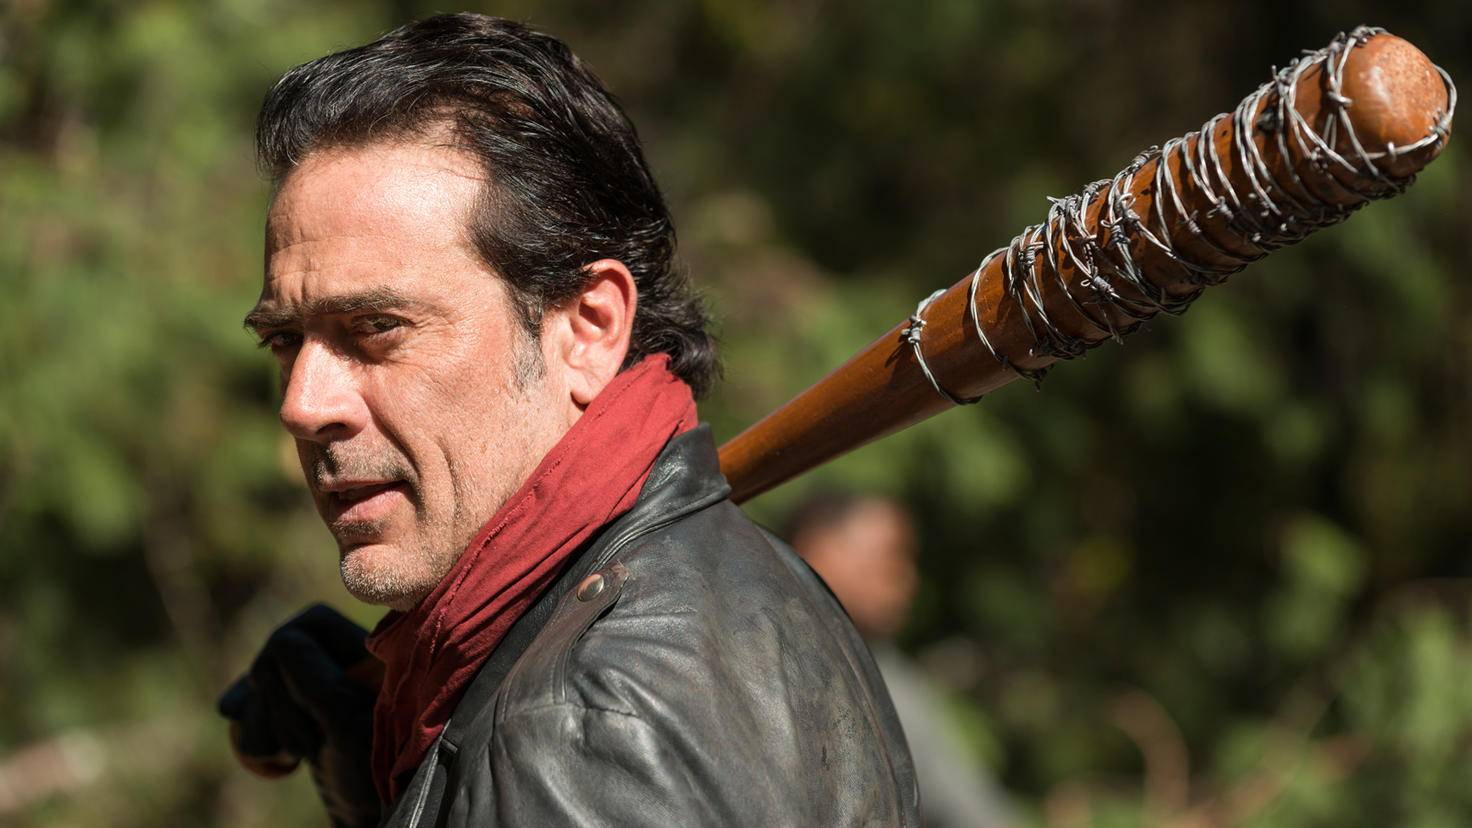 Negan-The Walking Dead-Gene Page-AMC-TWD_716_GP_1107_0115-RT (1)